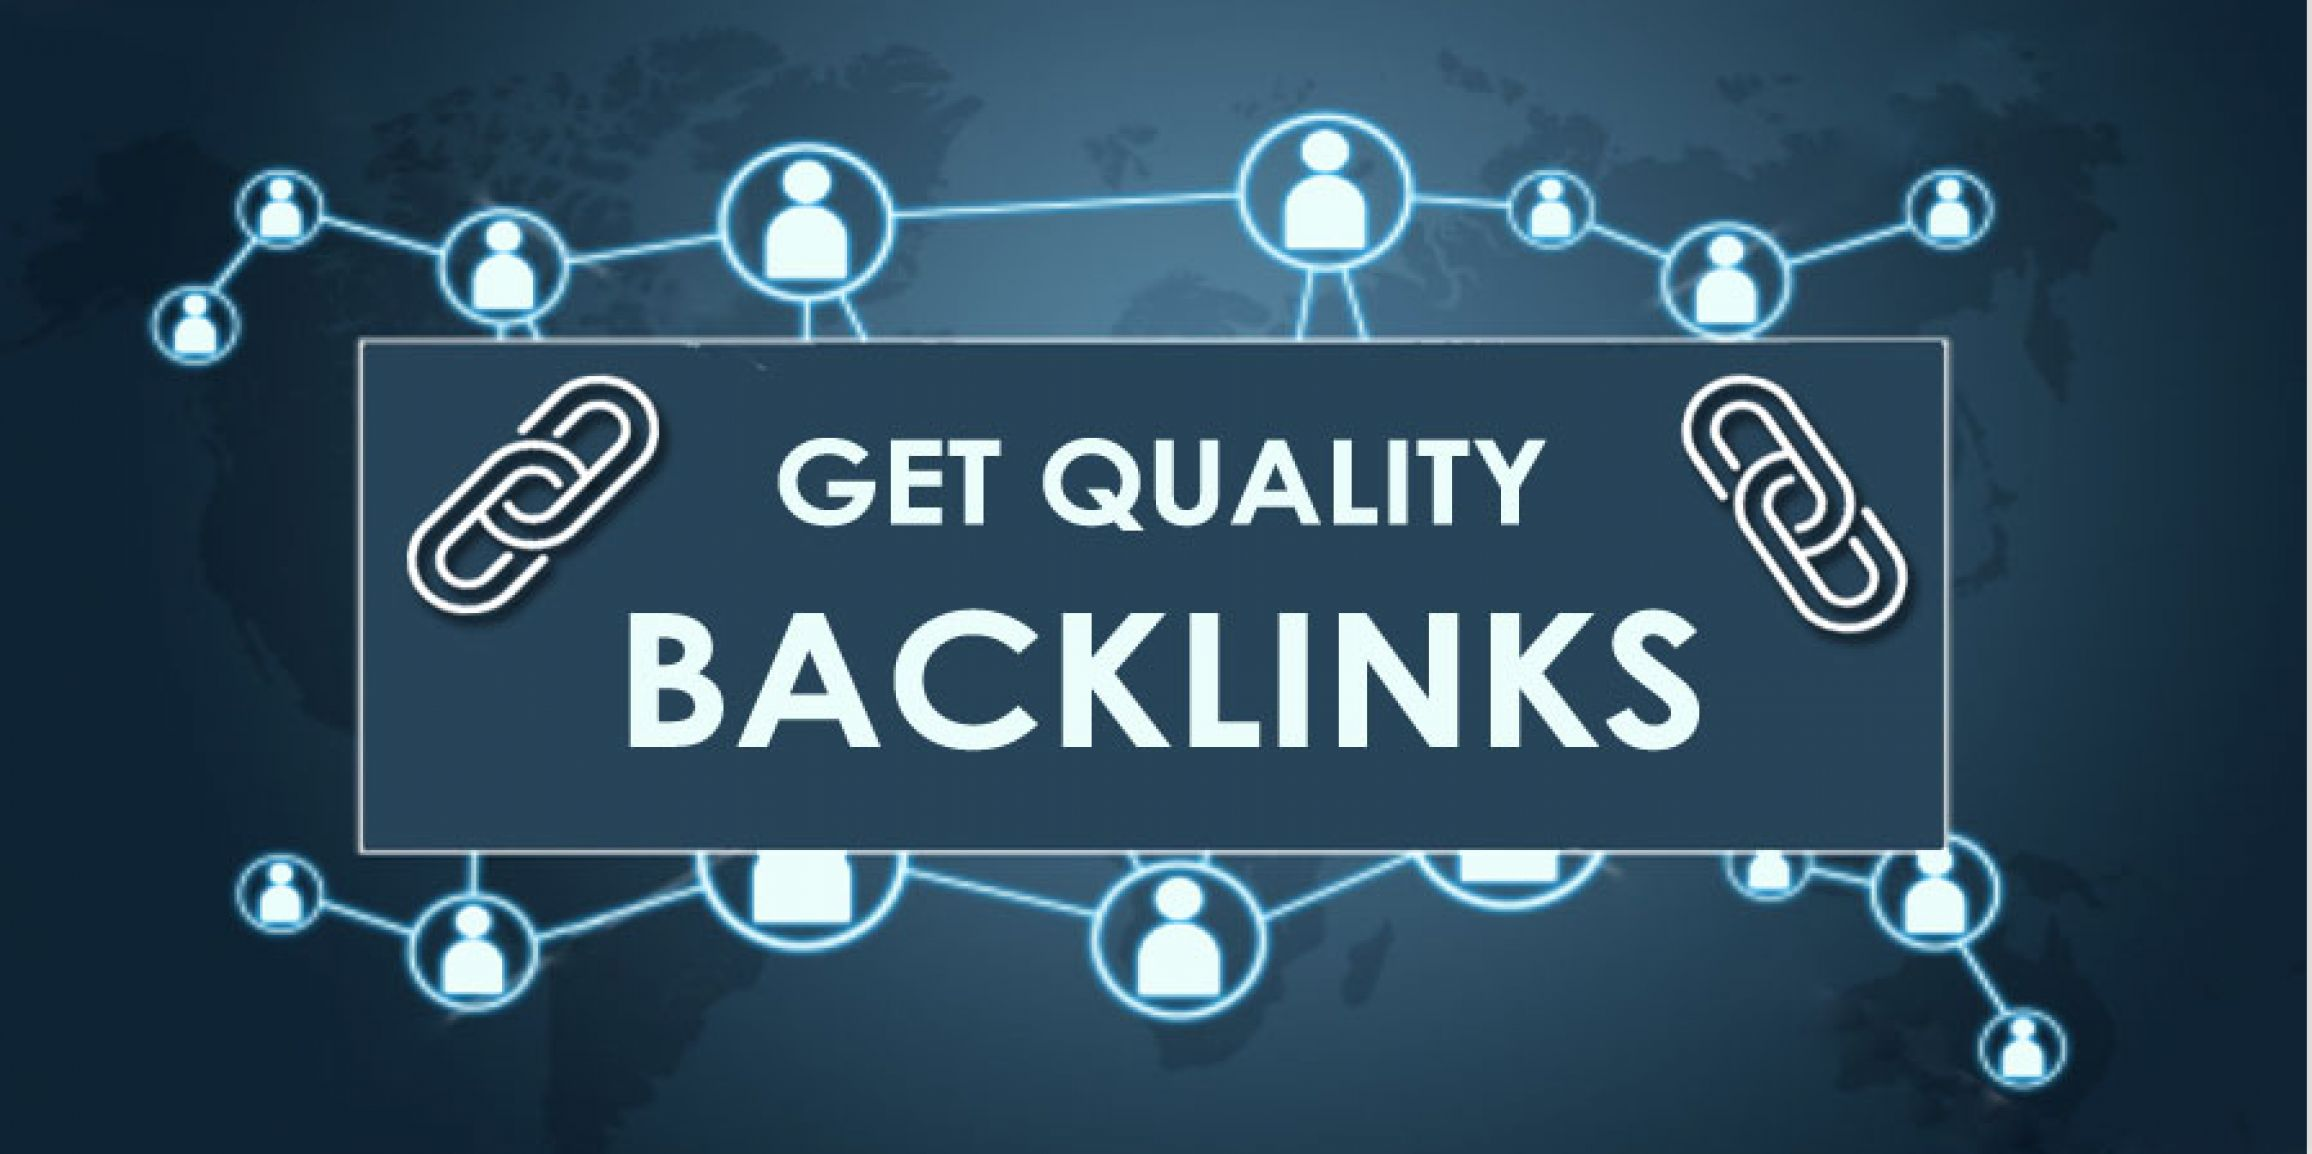 20 Quality Backlinks For dating,  adult and tech website Be no. 1 on google